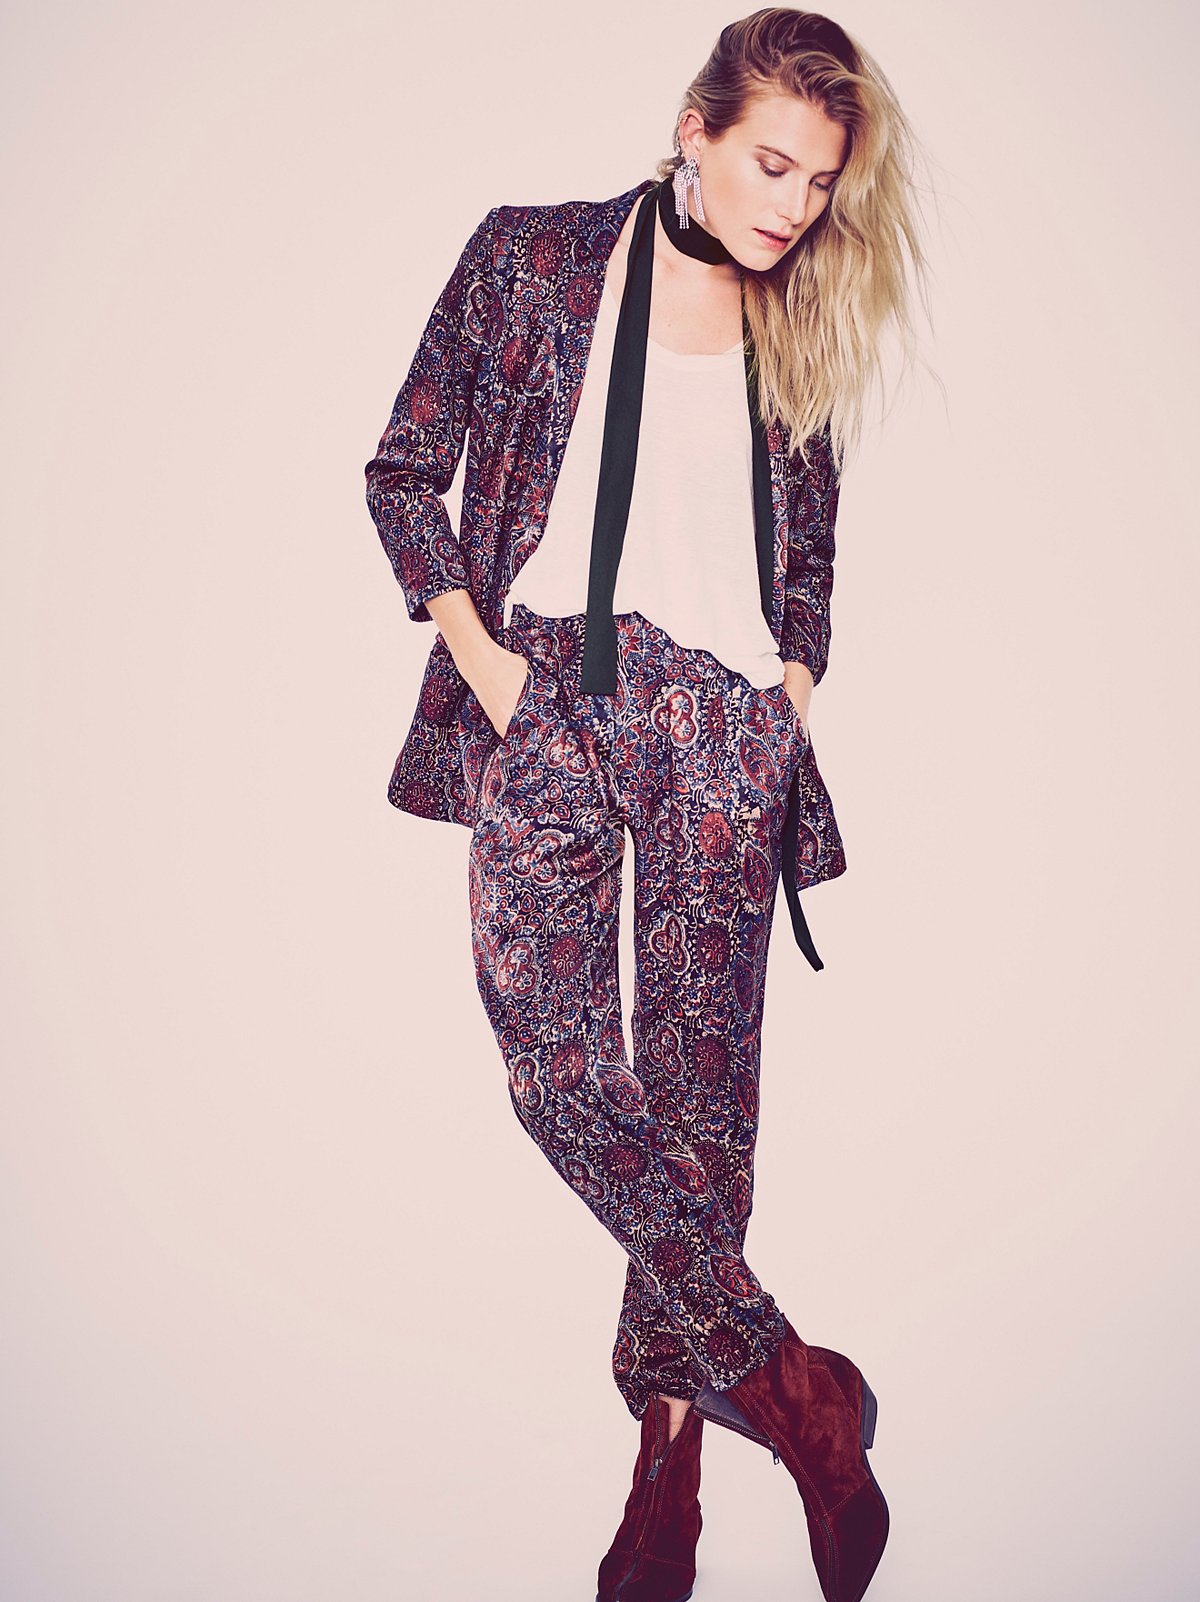 New Romantics Kamala Pant